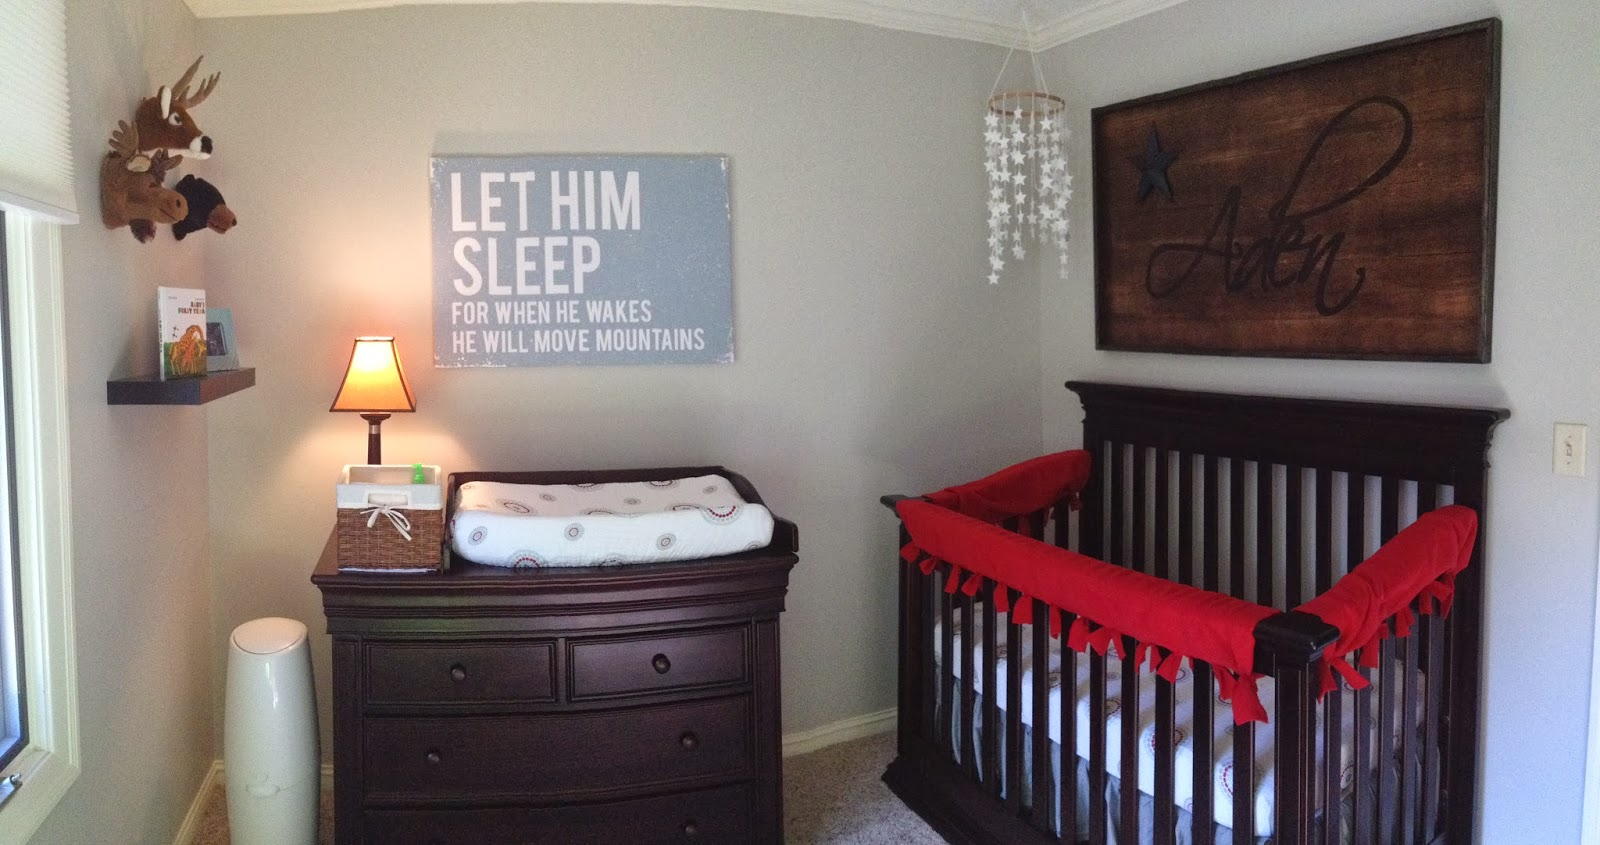 I Knew Wanted One Main Focal Piece In Adens Room To Be Hung Above His Crib And It Either Include Pictures Or Our Baby Boys Name